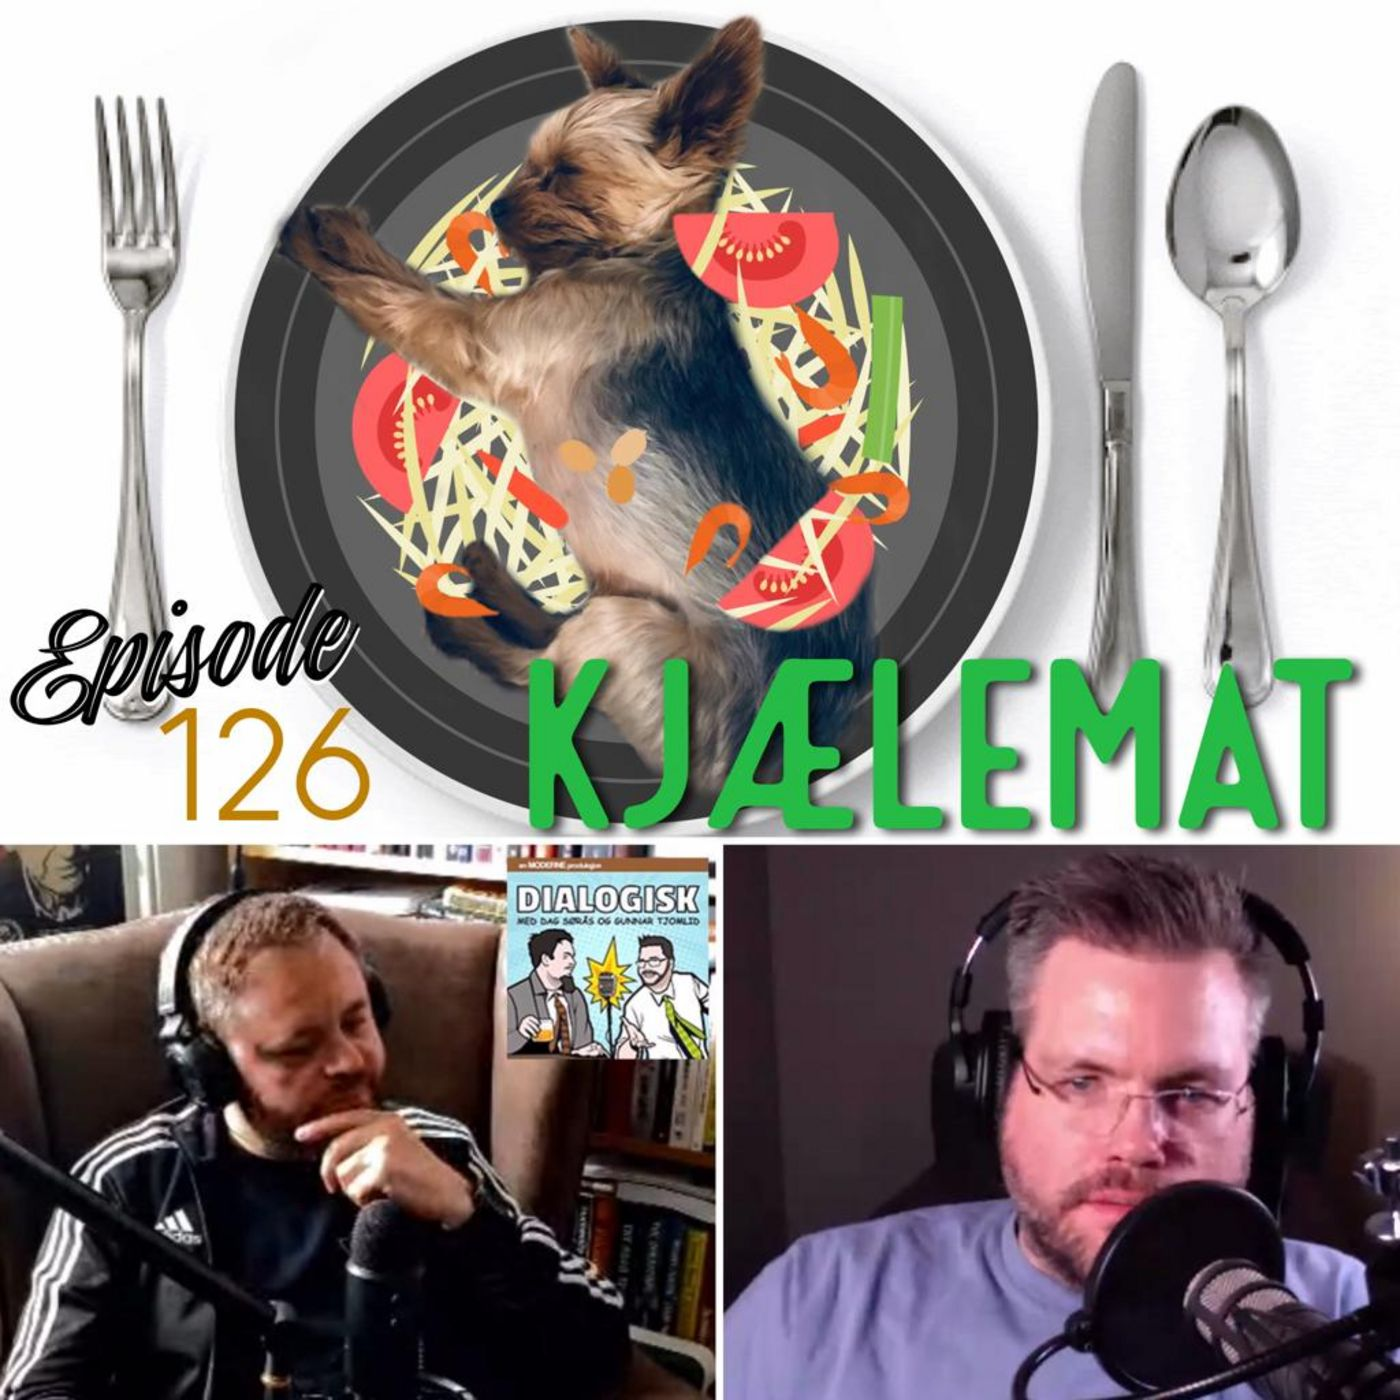 Episode 126: Kjælemat